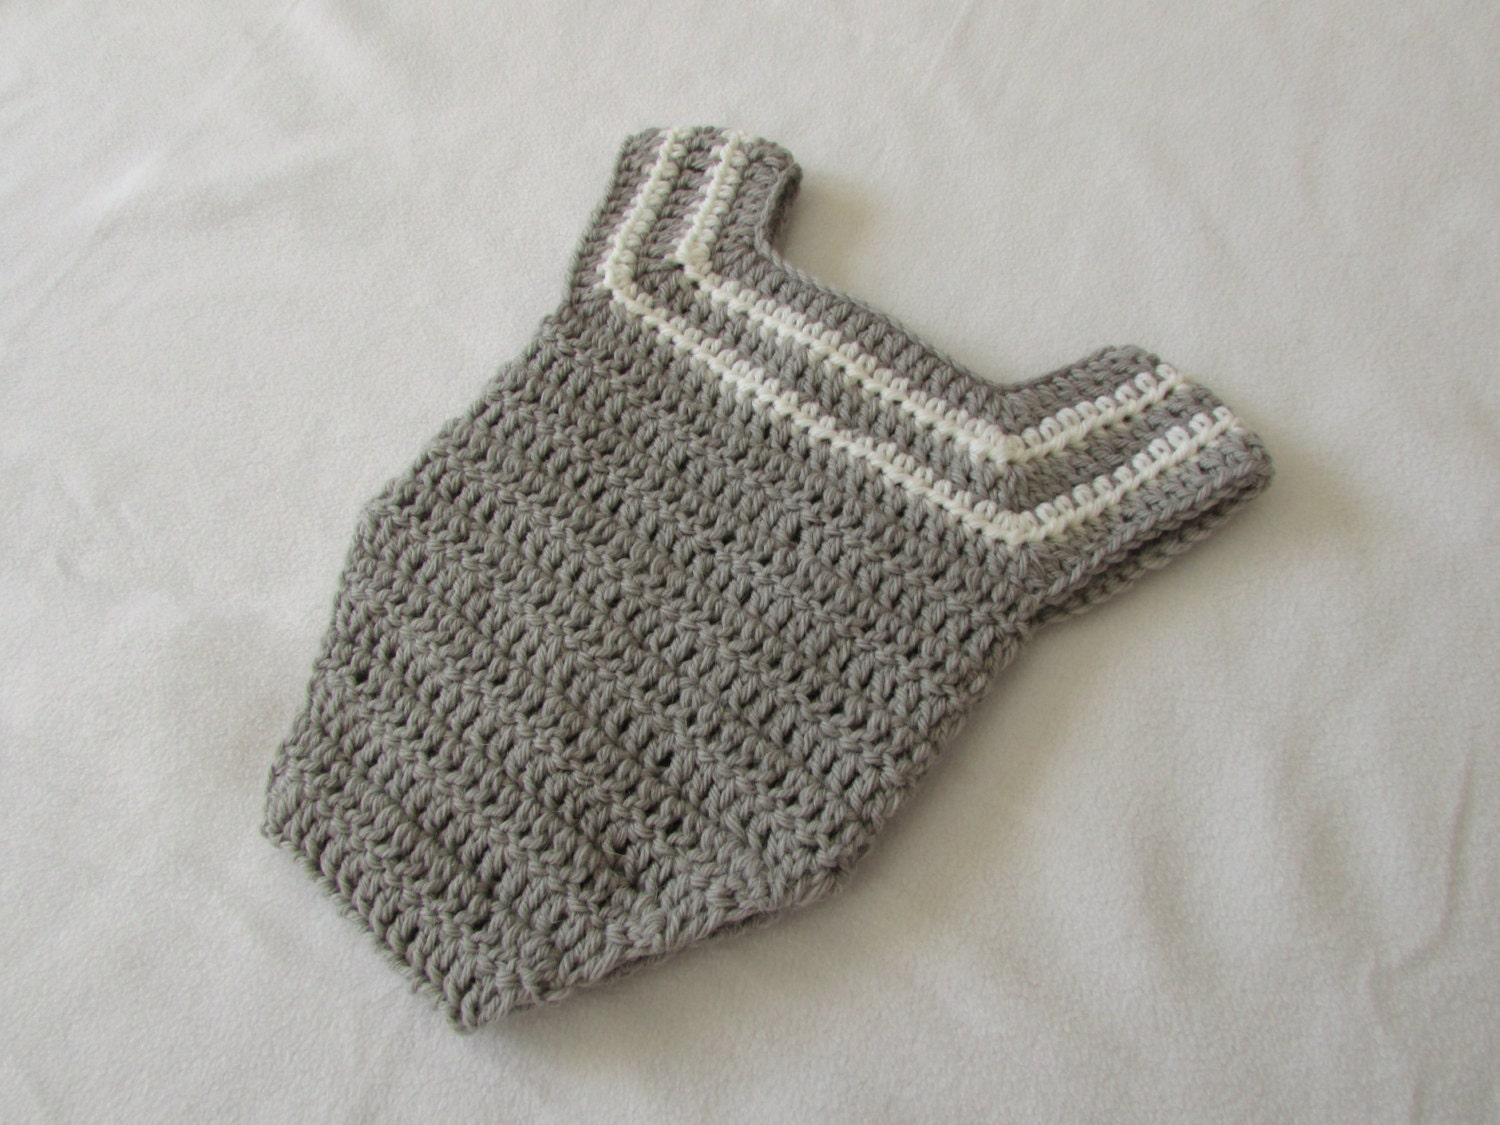 Free Easy Crochet Patterns Baby Bodysuits are perfect for Baby! Ultra soft % cotton bodysuits are the perfect gift for newborn birthdays, Mother's Day, baby showers or any occasion.